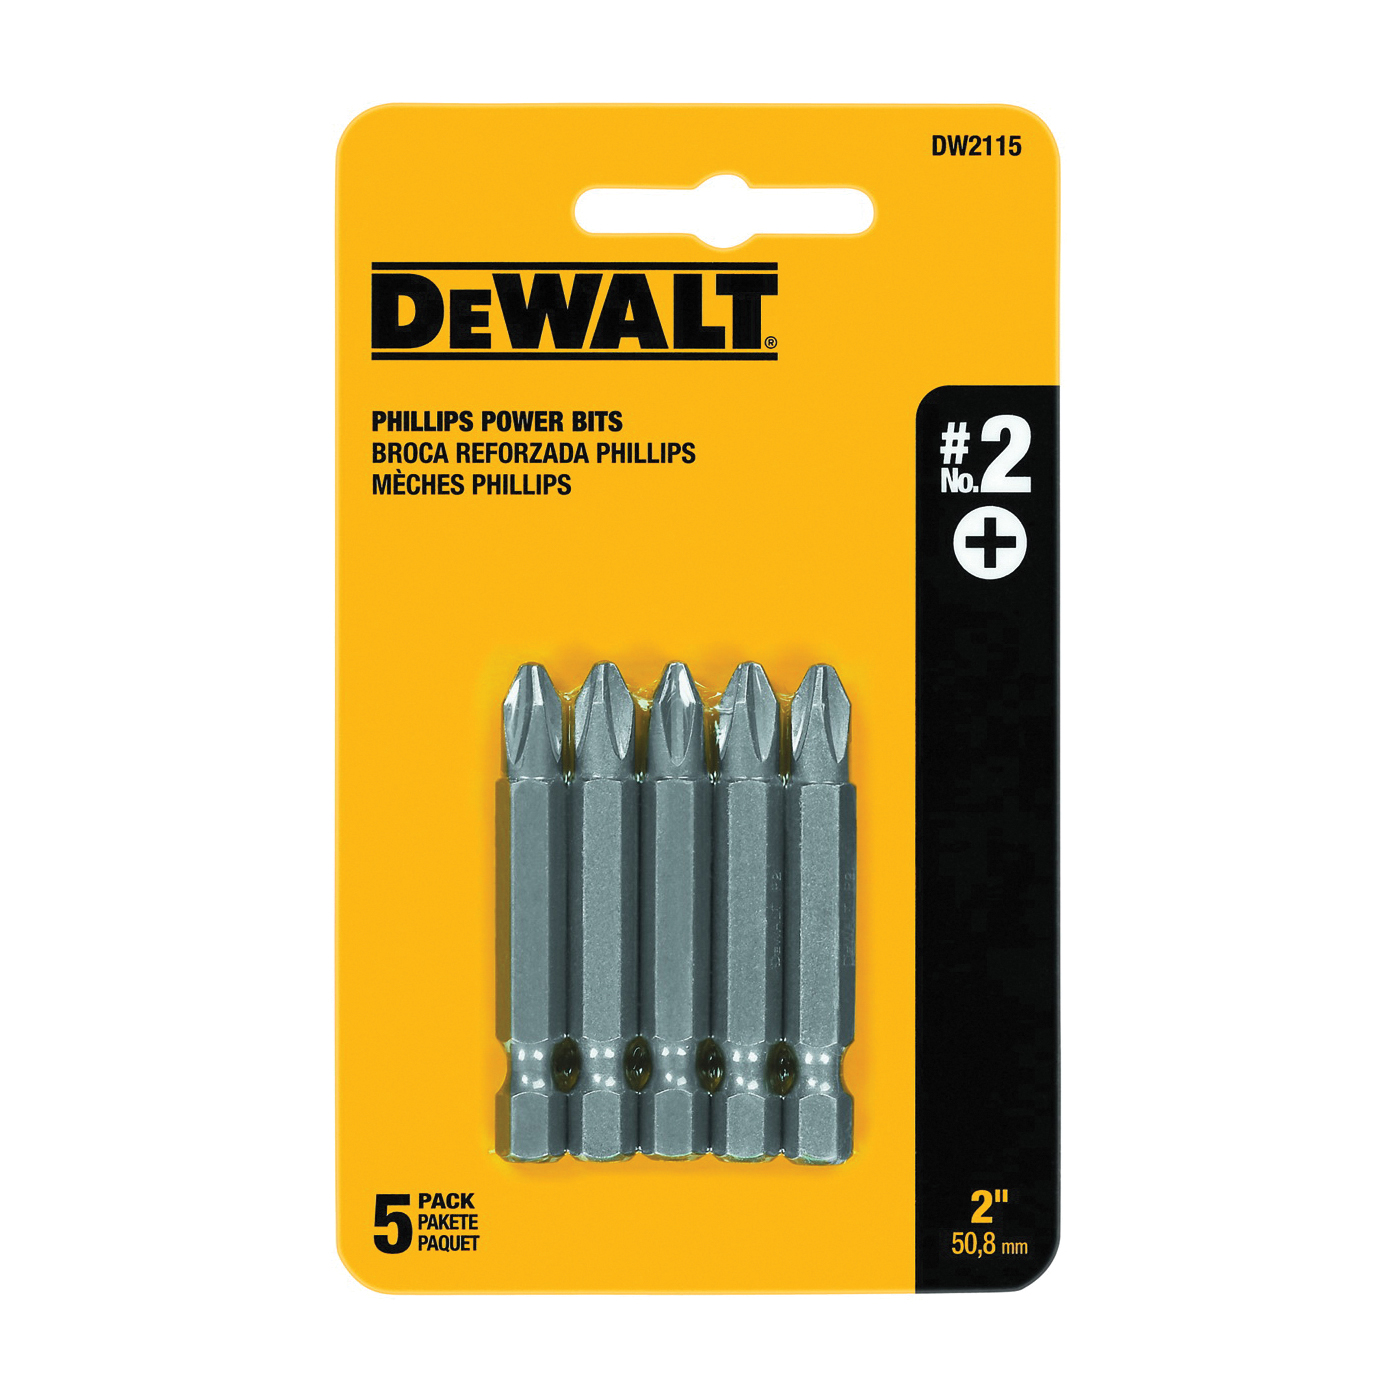 Picture of DeWALT DW2115 Power Bit, #2 Drive, Phillips Drive, 1/4 in Shank, Hex Shank, 2 in L, Tool Steel